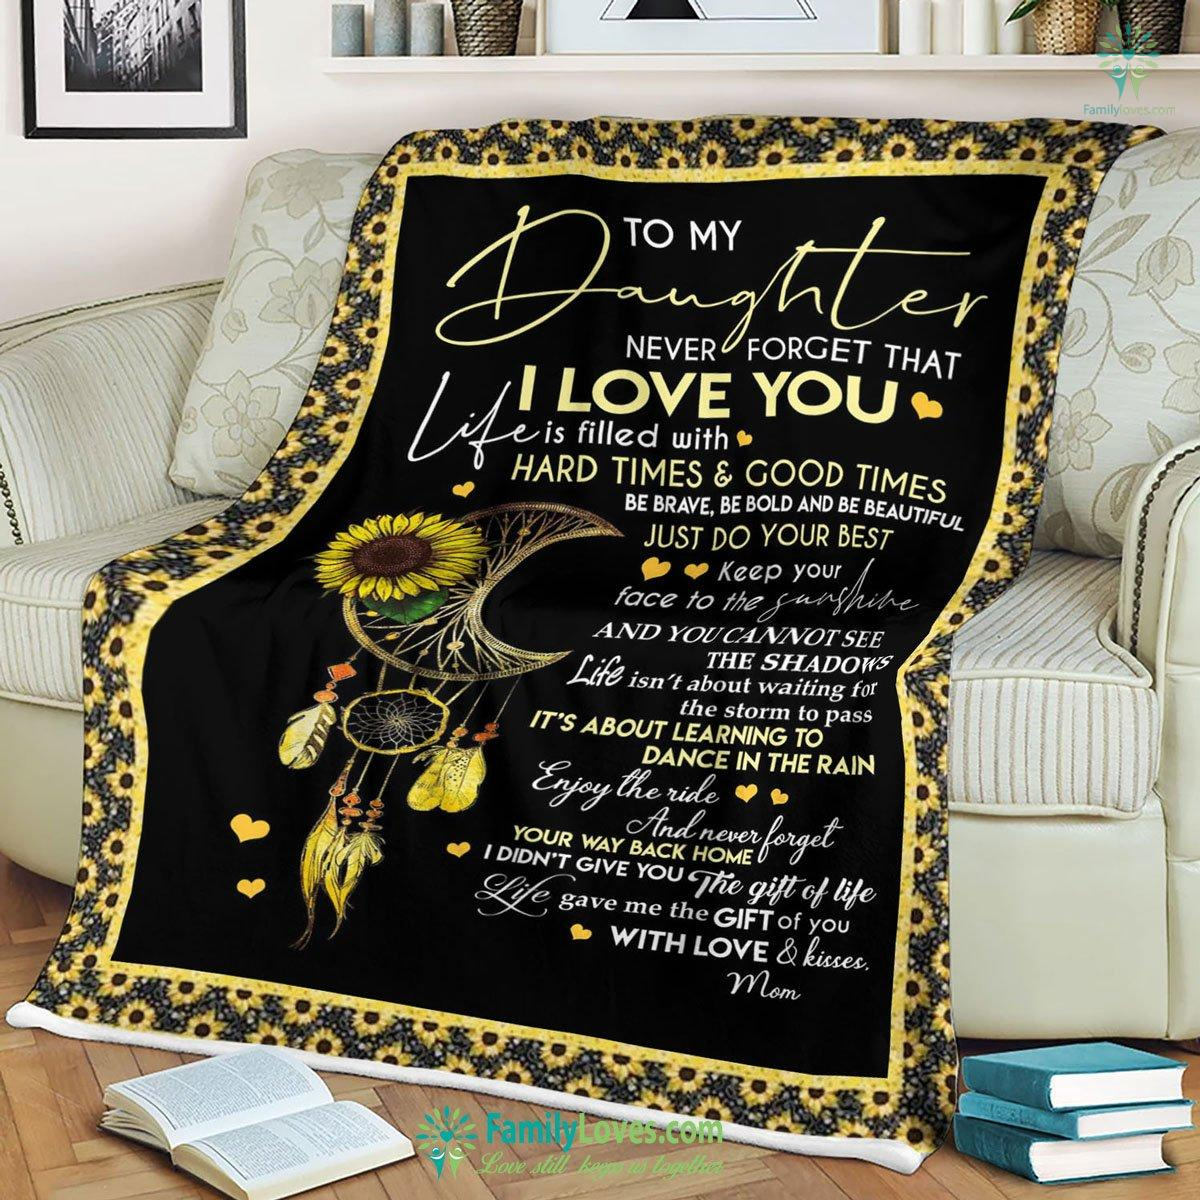 To My Daughter Never Forget That Blanket 2 Familyloves.com